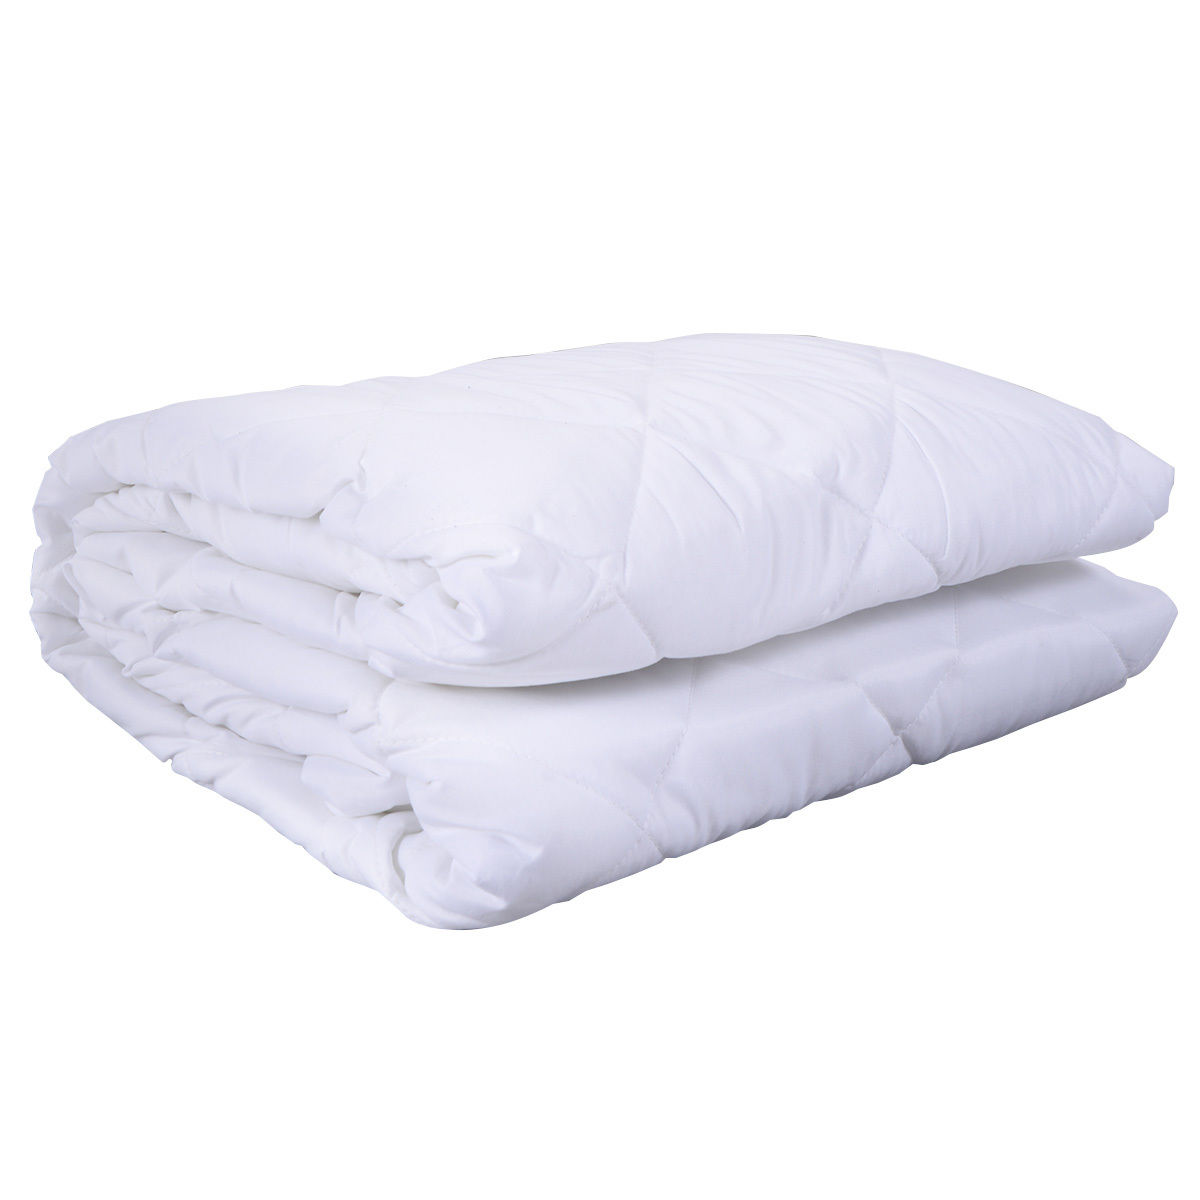 HOT GCZW-Mattress Cover Bed Topper Bug Dust Mite Moistureproof Pad Protector Quilted 100*200cm